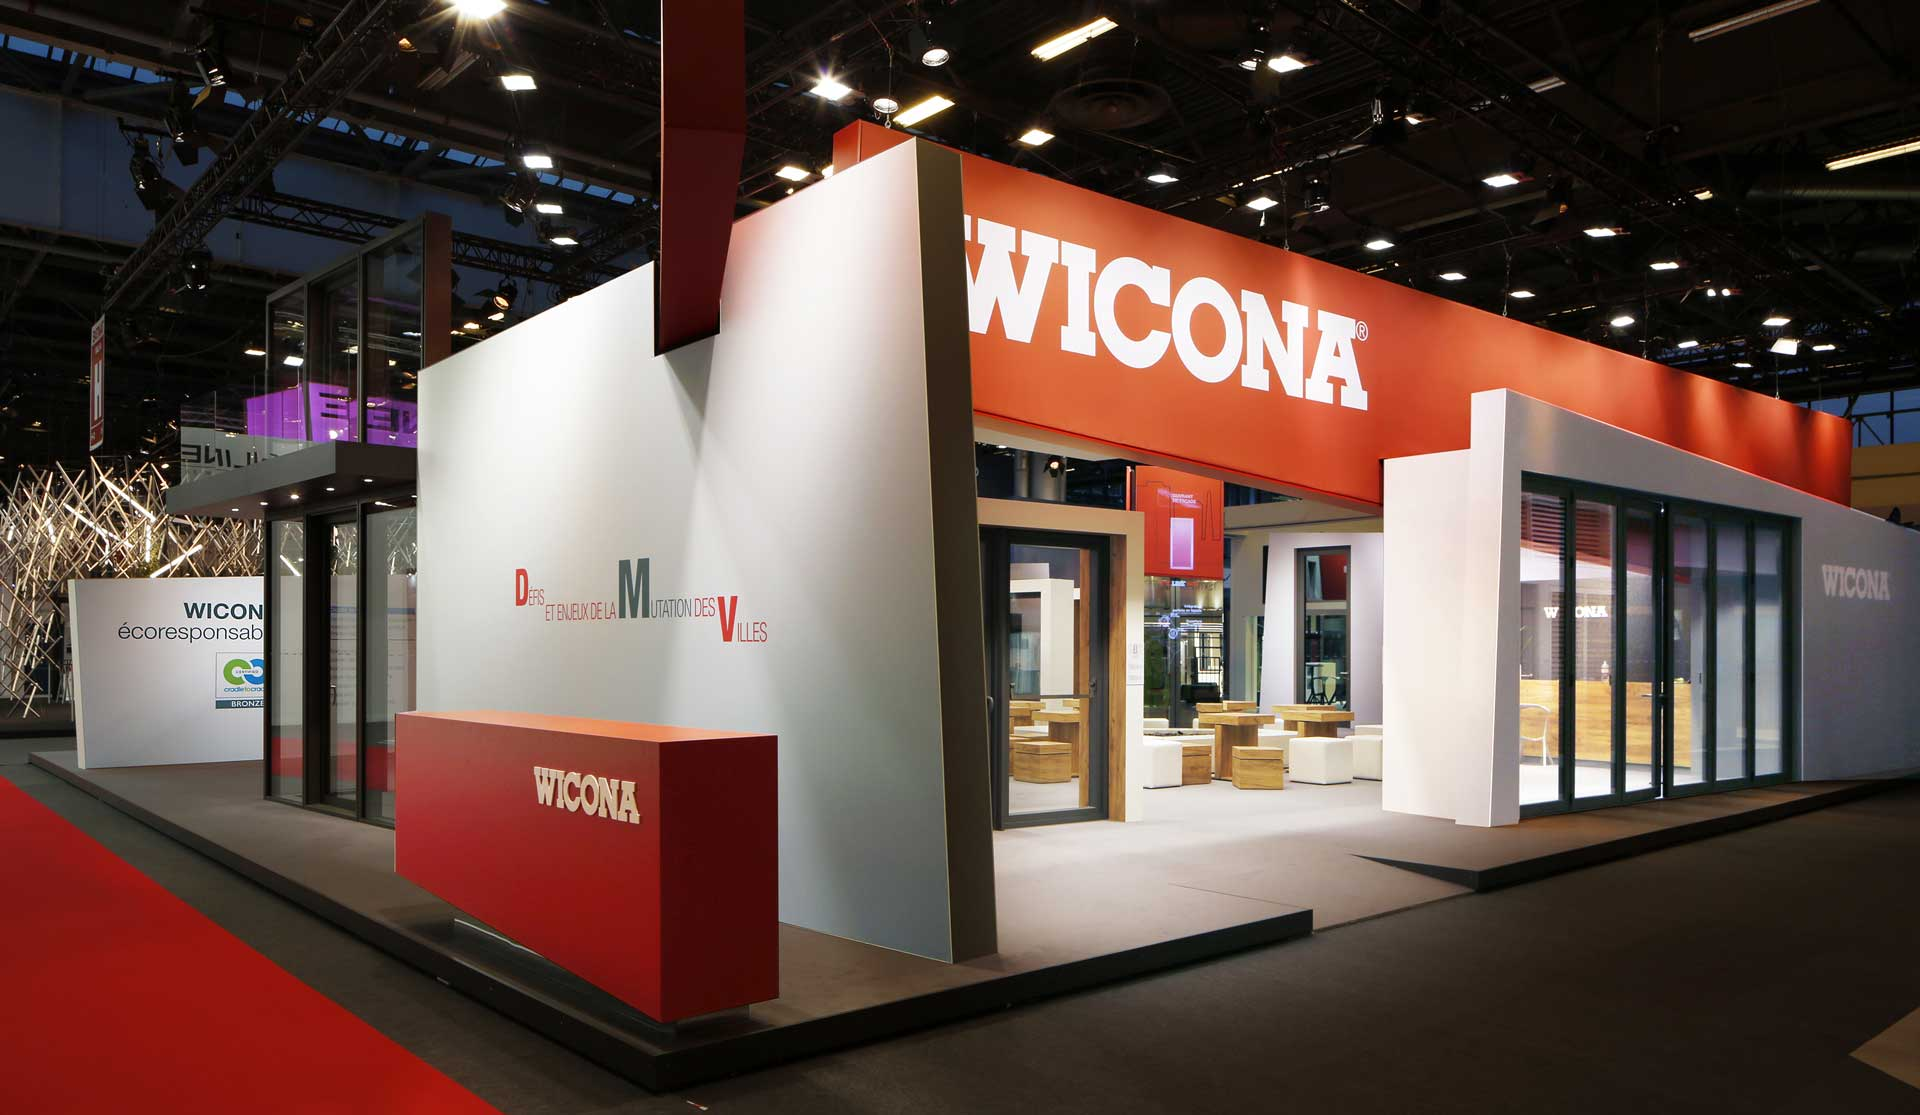 Salon Batimat Wicona à Batimat 2017 Wicona France